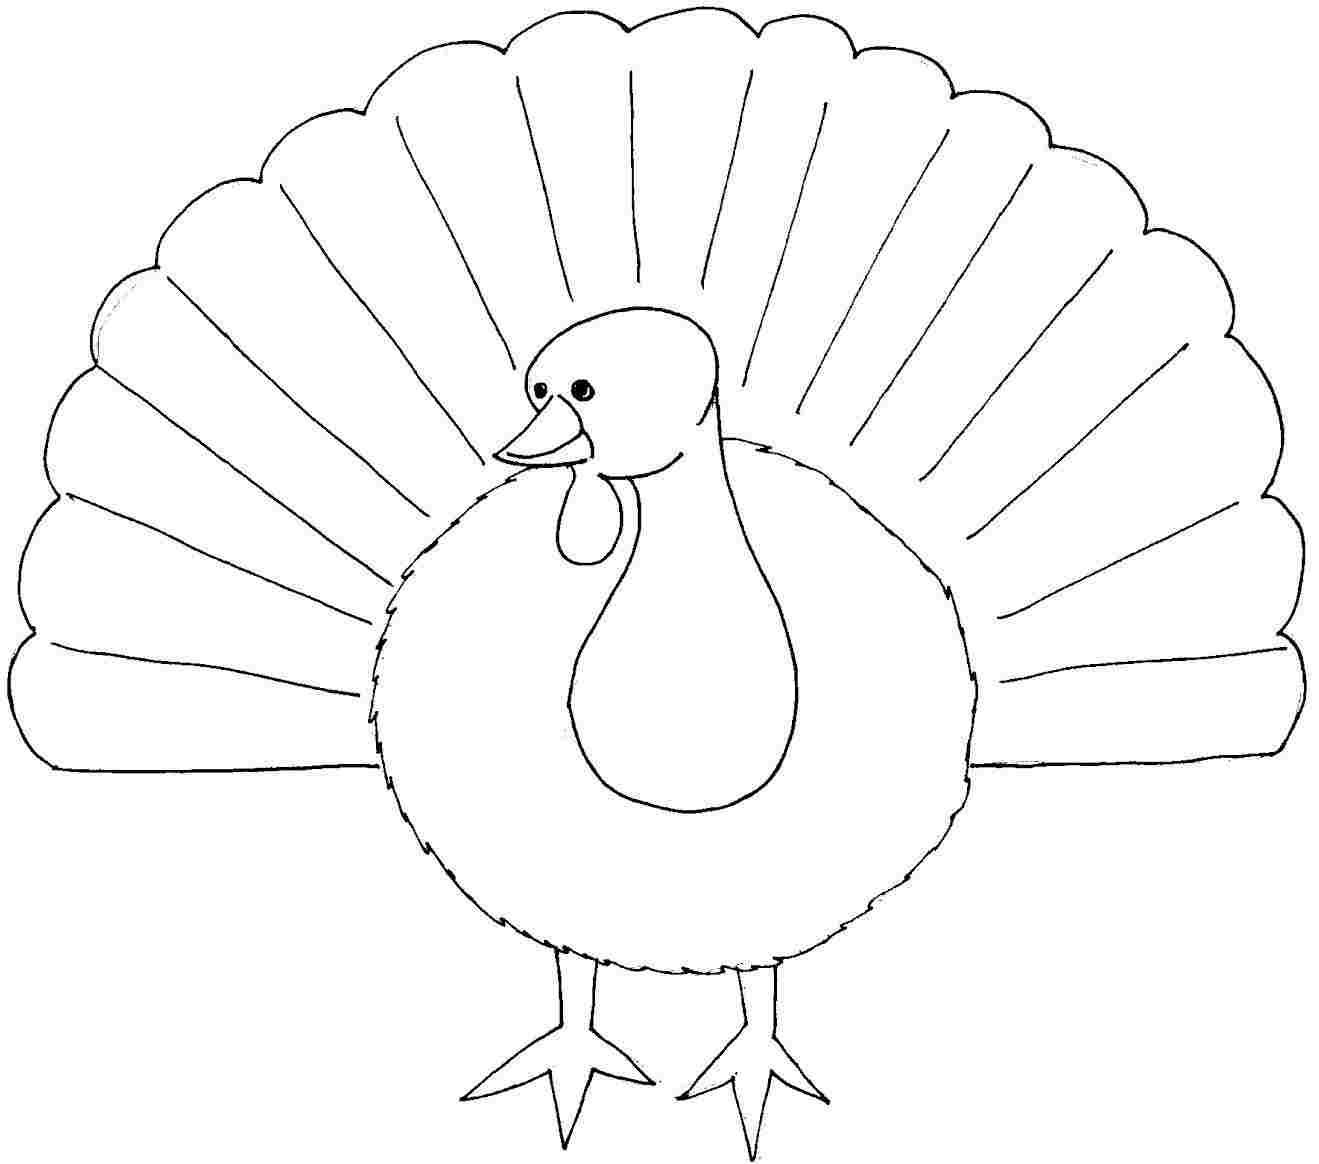 Printable Free Thanksgiving Turkey Colouring Pages For Kids Amp Boys